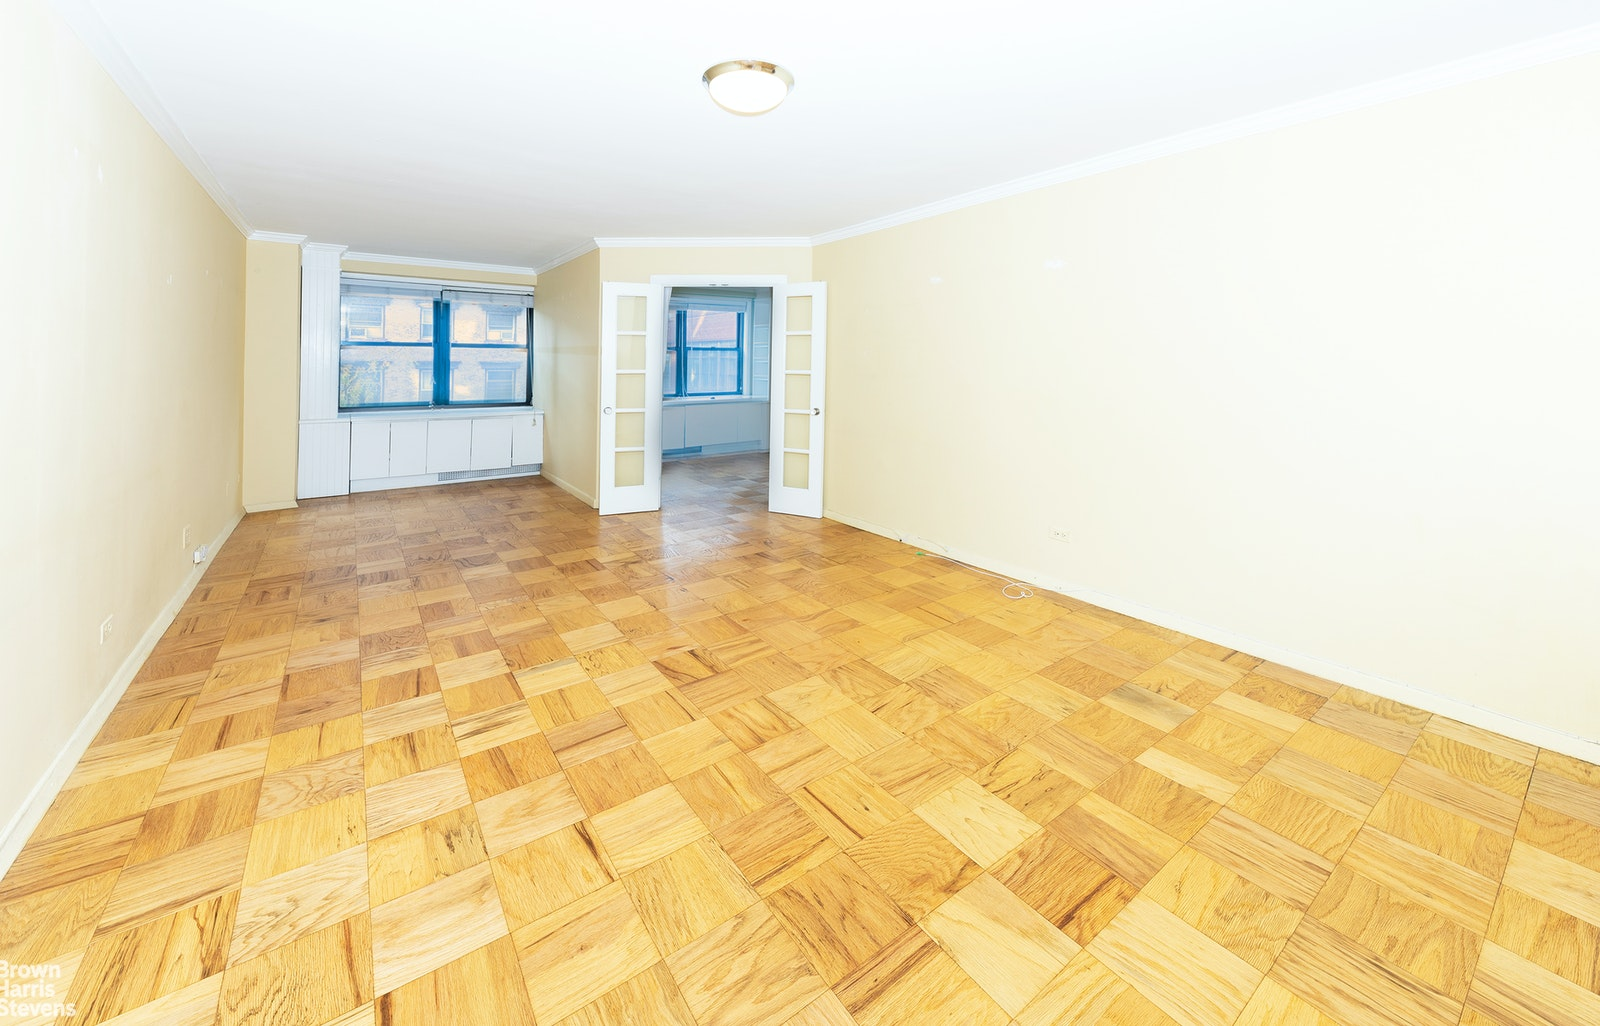 330 Third Avenue 4j, Gramercy Park, NYC, 10010, $475,000, Property For Sale, Halstead Real Estate, Photo 2